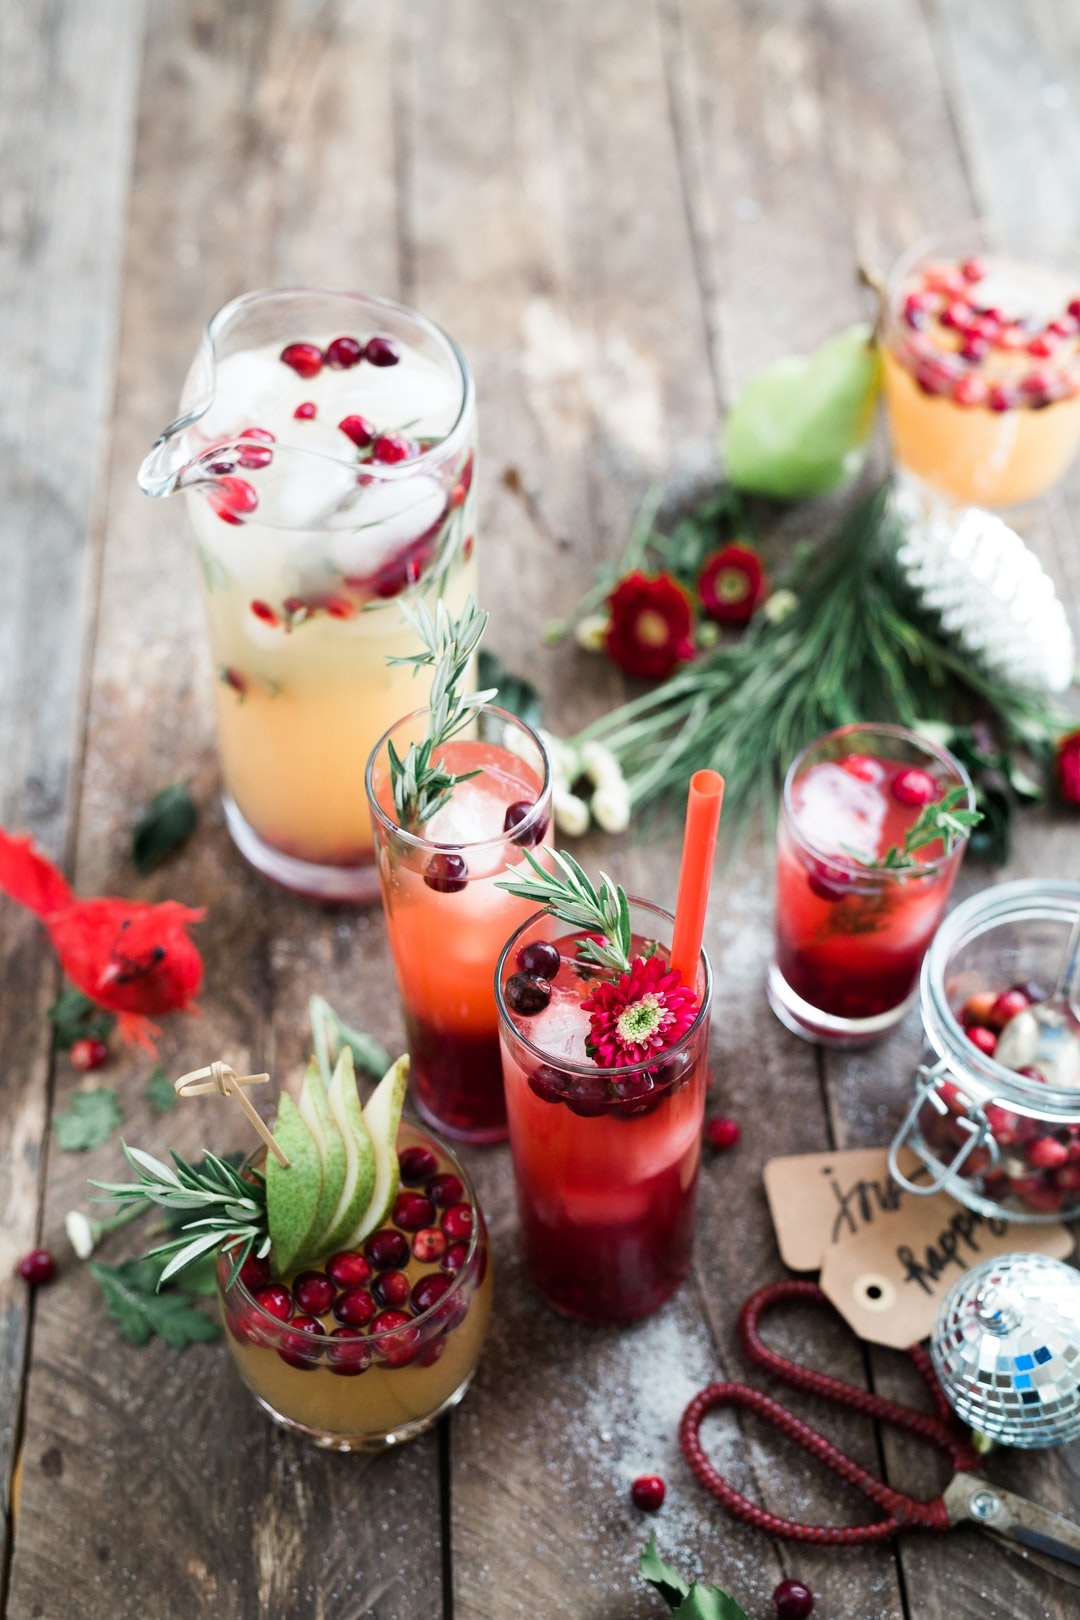 A trip home from shopping after a long day of holiday prep, and I was ready to settle in for a merry sipper. Three easy ingredients–fruit juice (pom or pear), vodka and ginger kombucha–later and we had a full table of glowy drinks. Happiest Holidays.